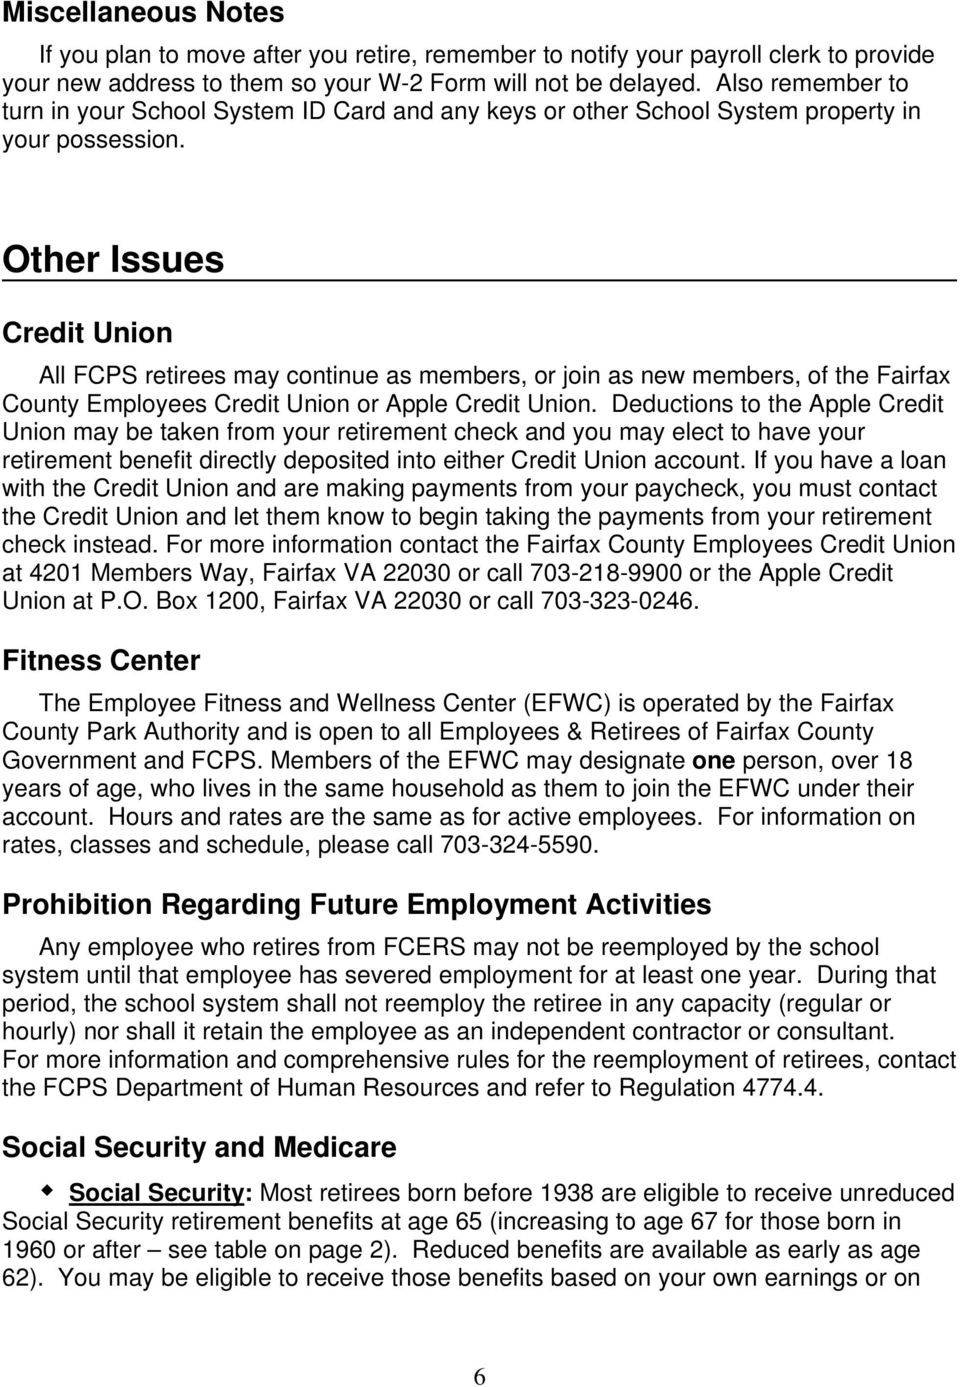 Other Issues Credit Union All FCPS retirees may continue as members, or join as new members, of the Fairfax County Employees Credit Union or Apple Credit Union.